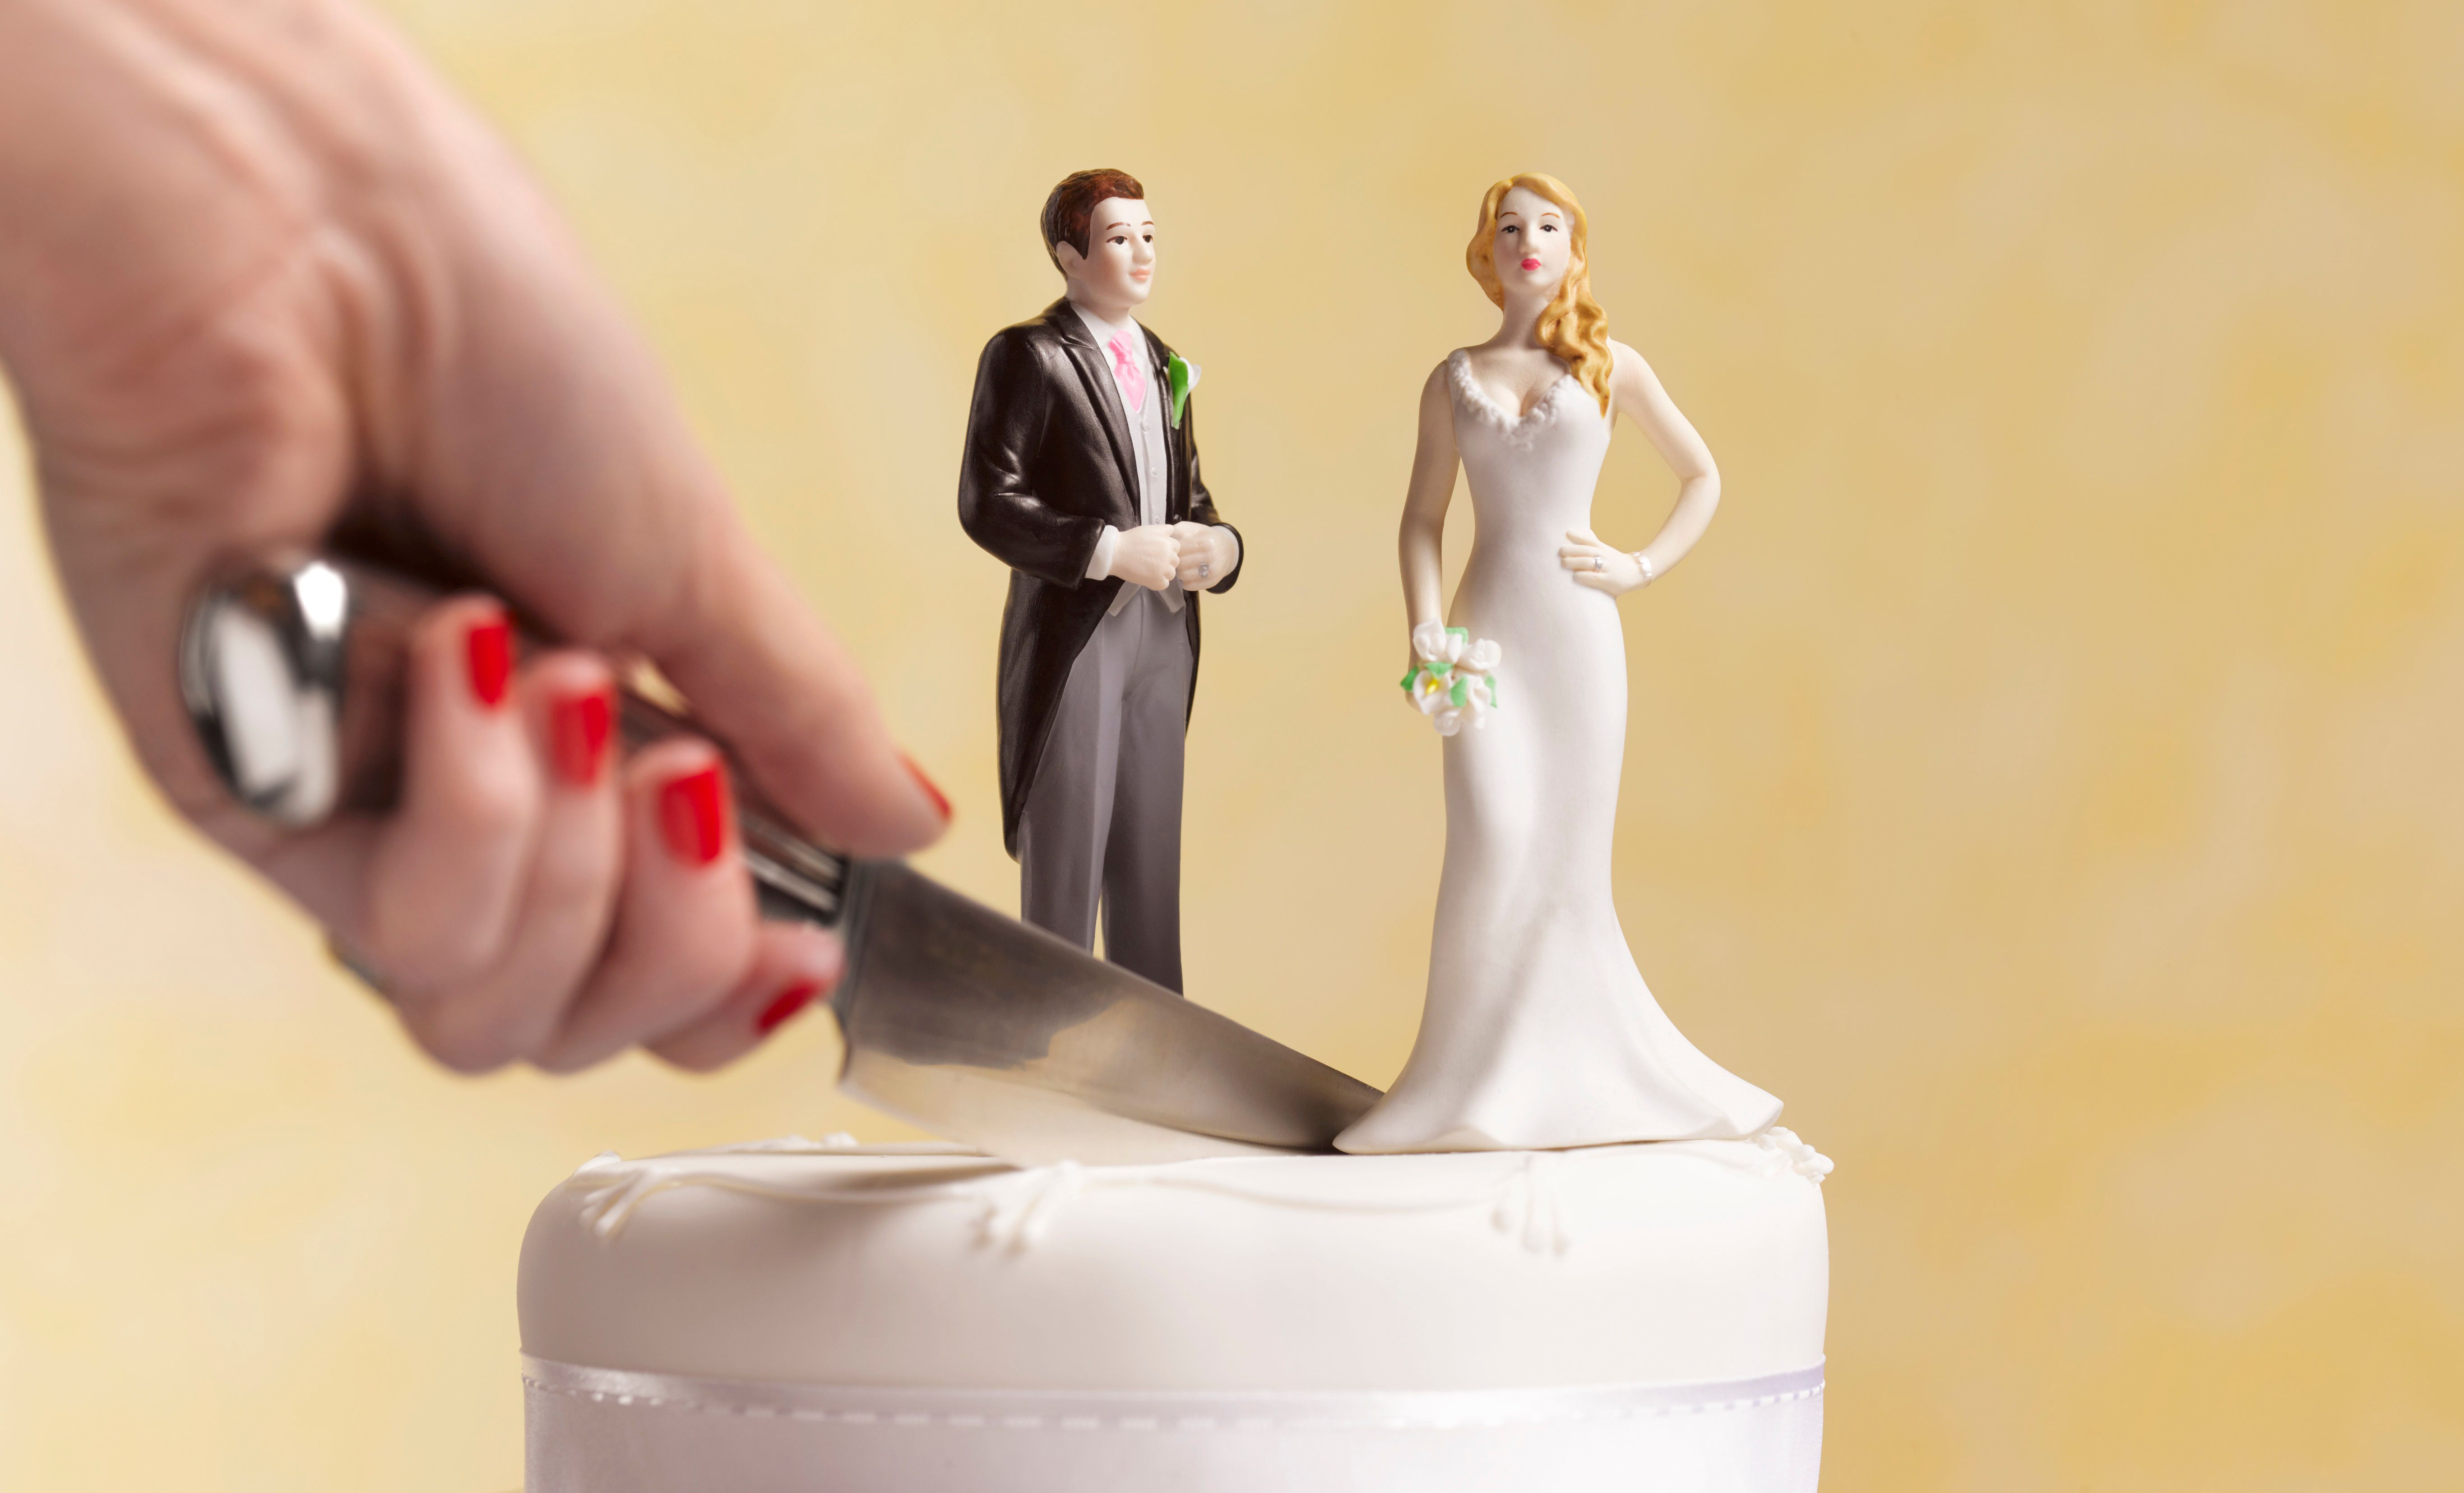 How to Conquer Your 10 Biggest Marriage Fears How to Conquer Your 10 Biggest Marriage Fears new foto